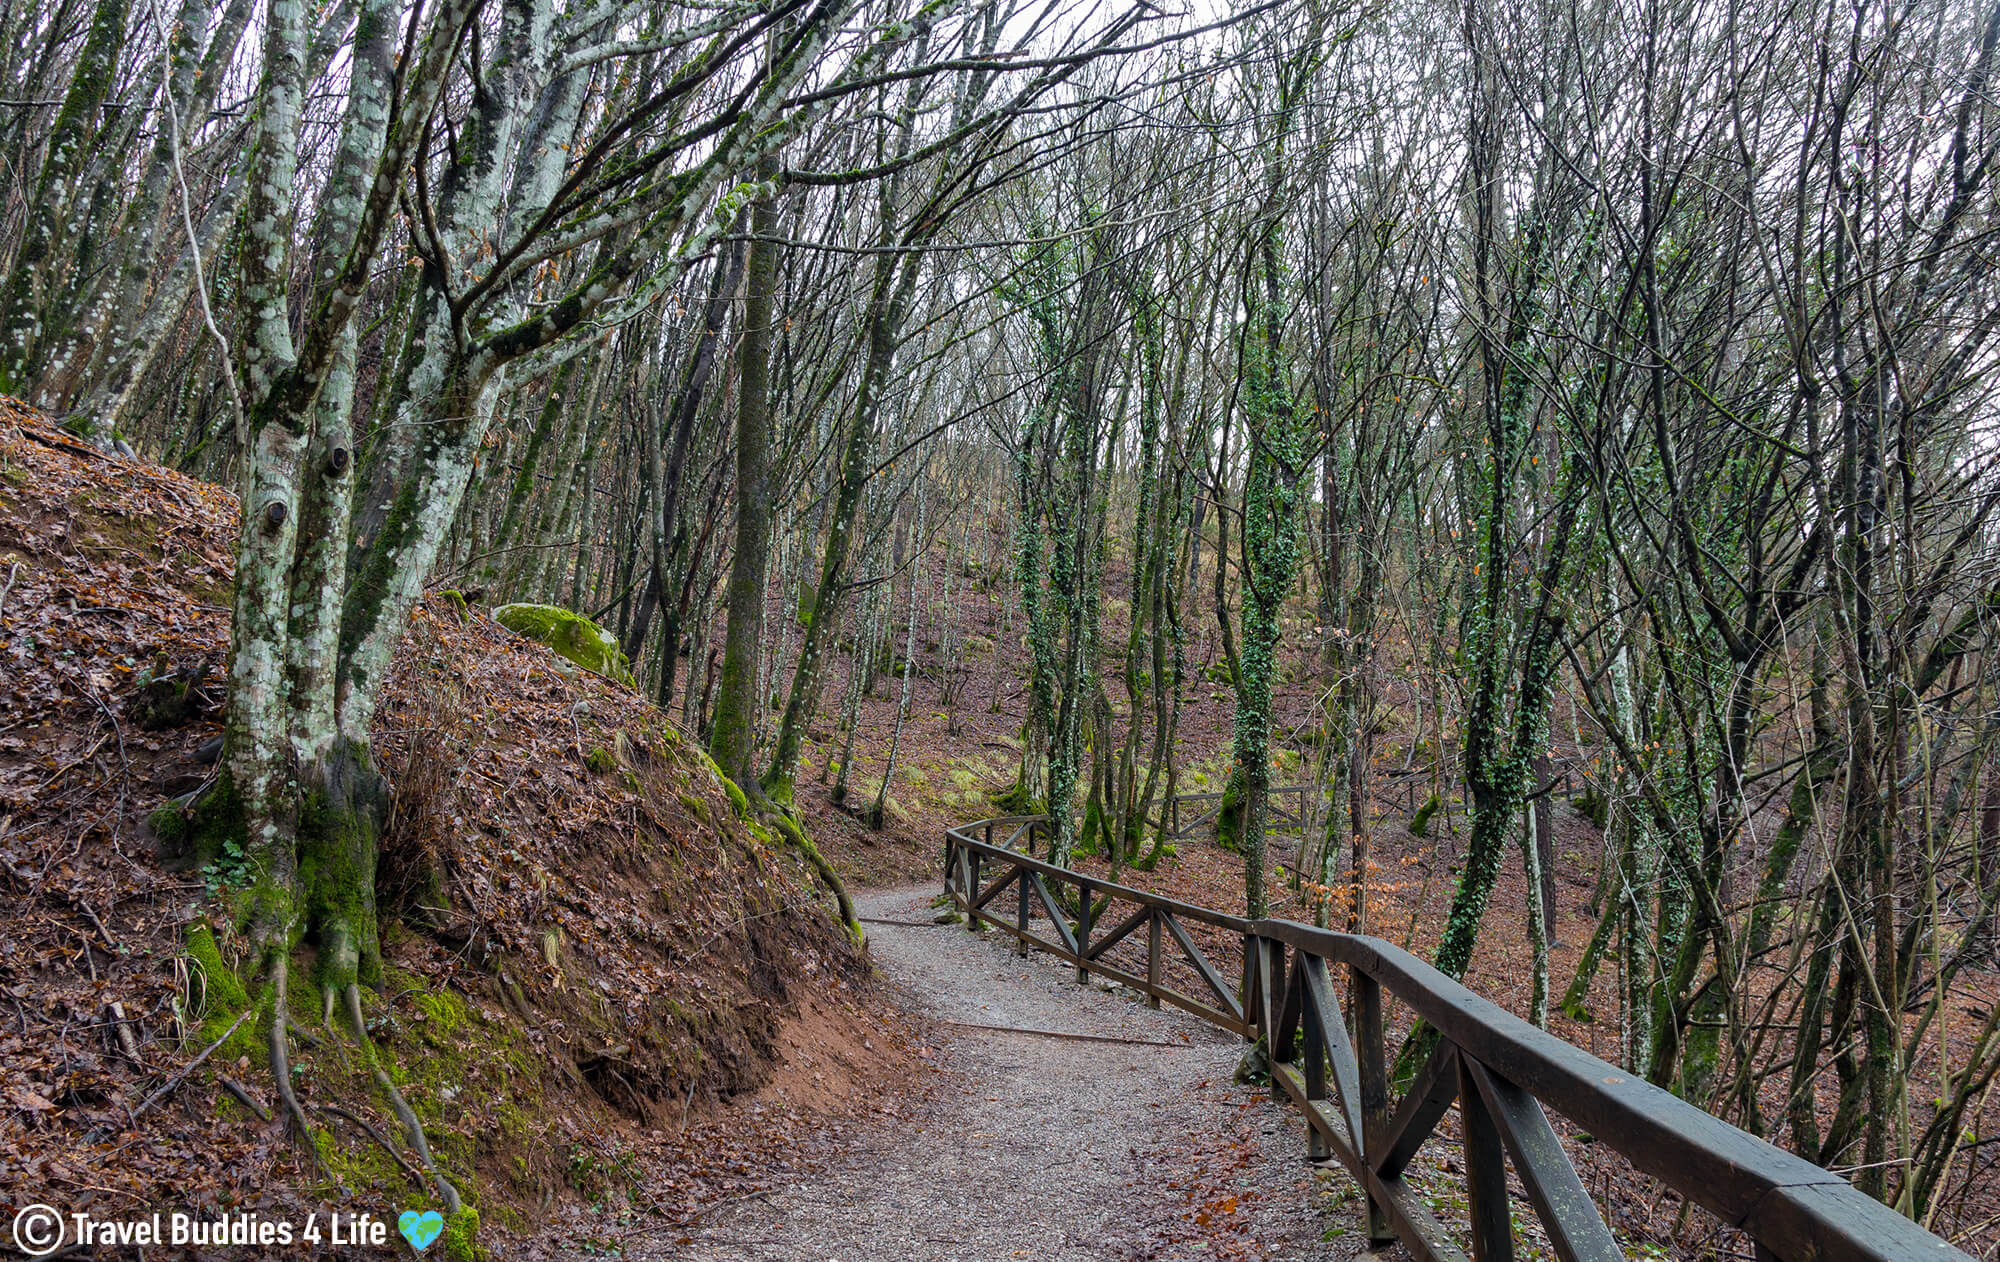 Walking Through the Woods of the Karst Region to the UNESCO Heritage Site Škocjan Caves in Slovenia, Europe